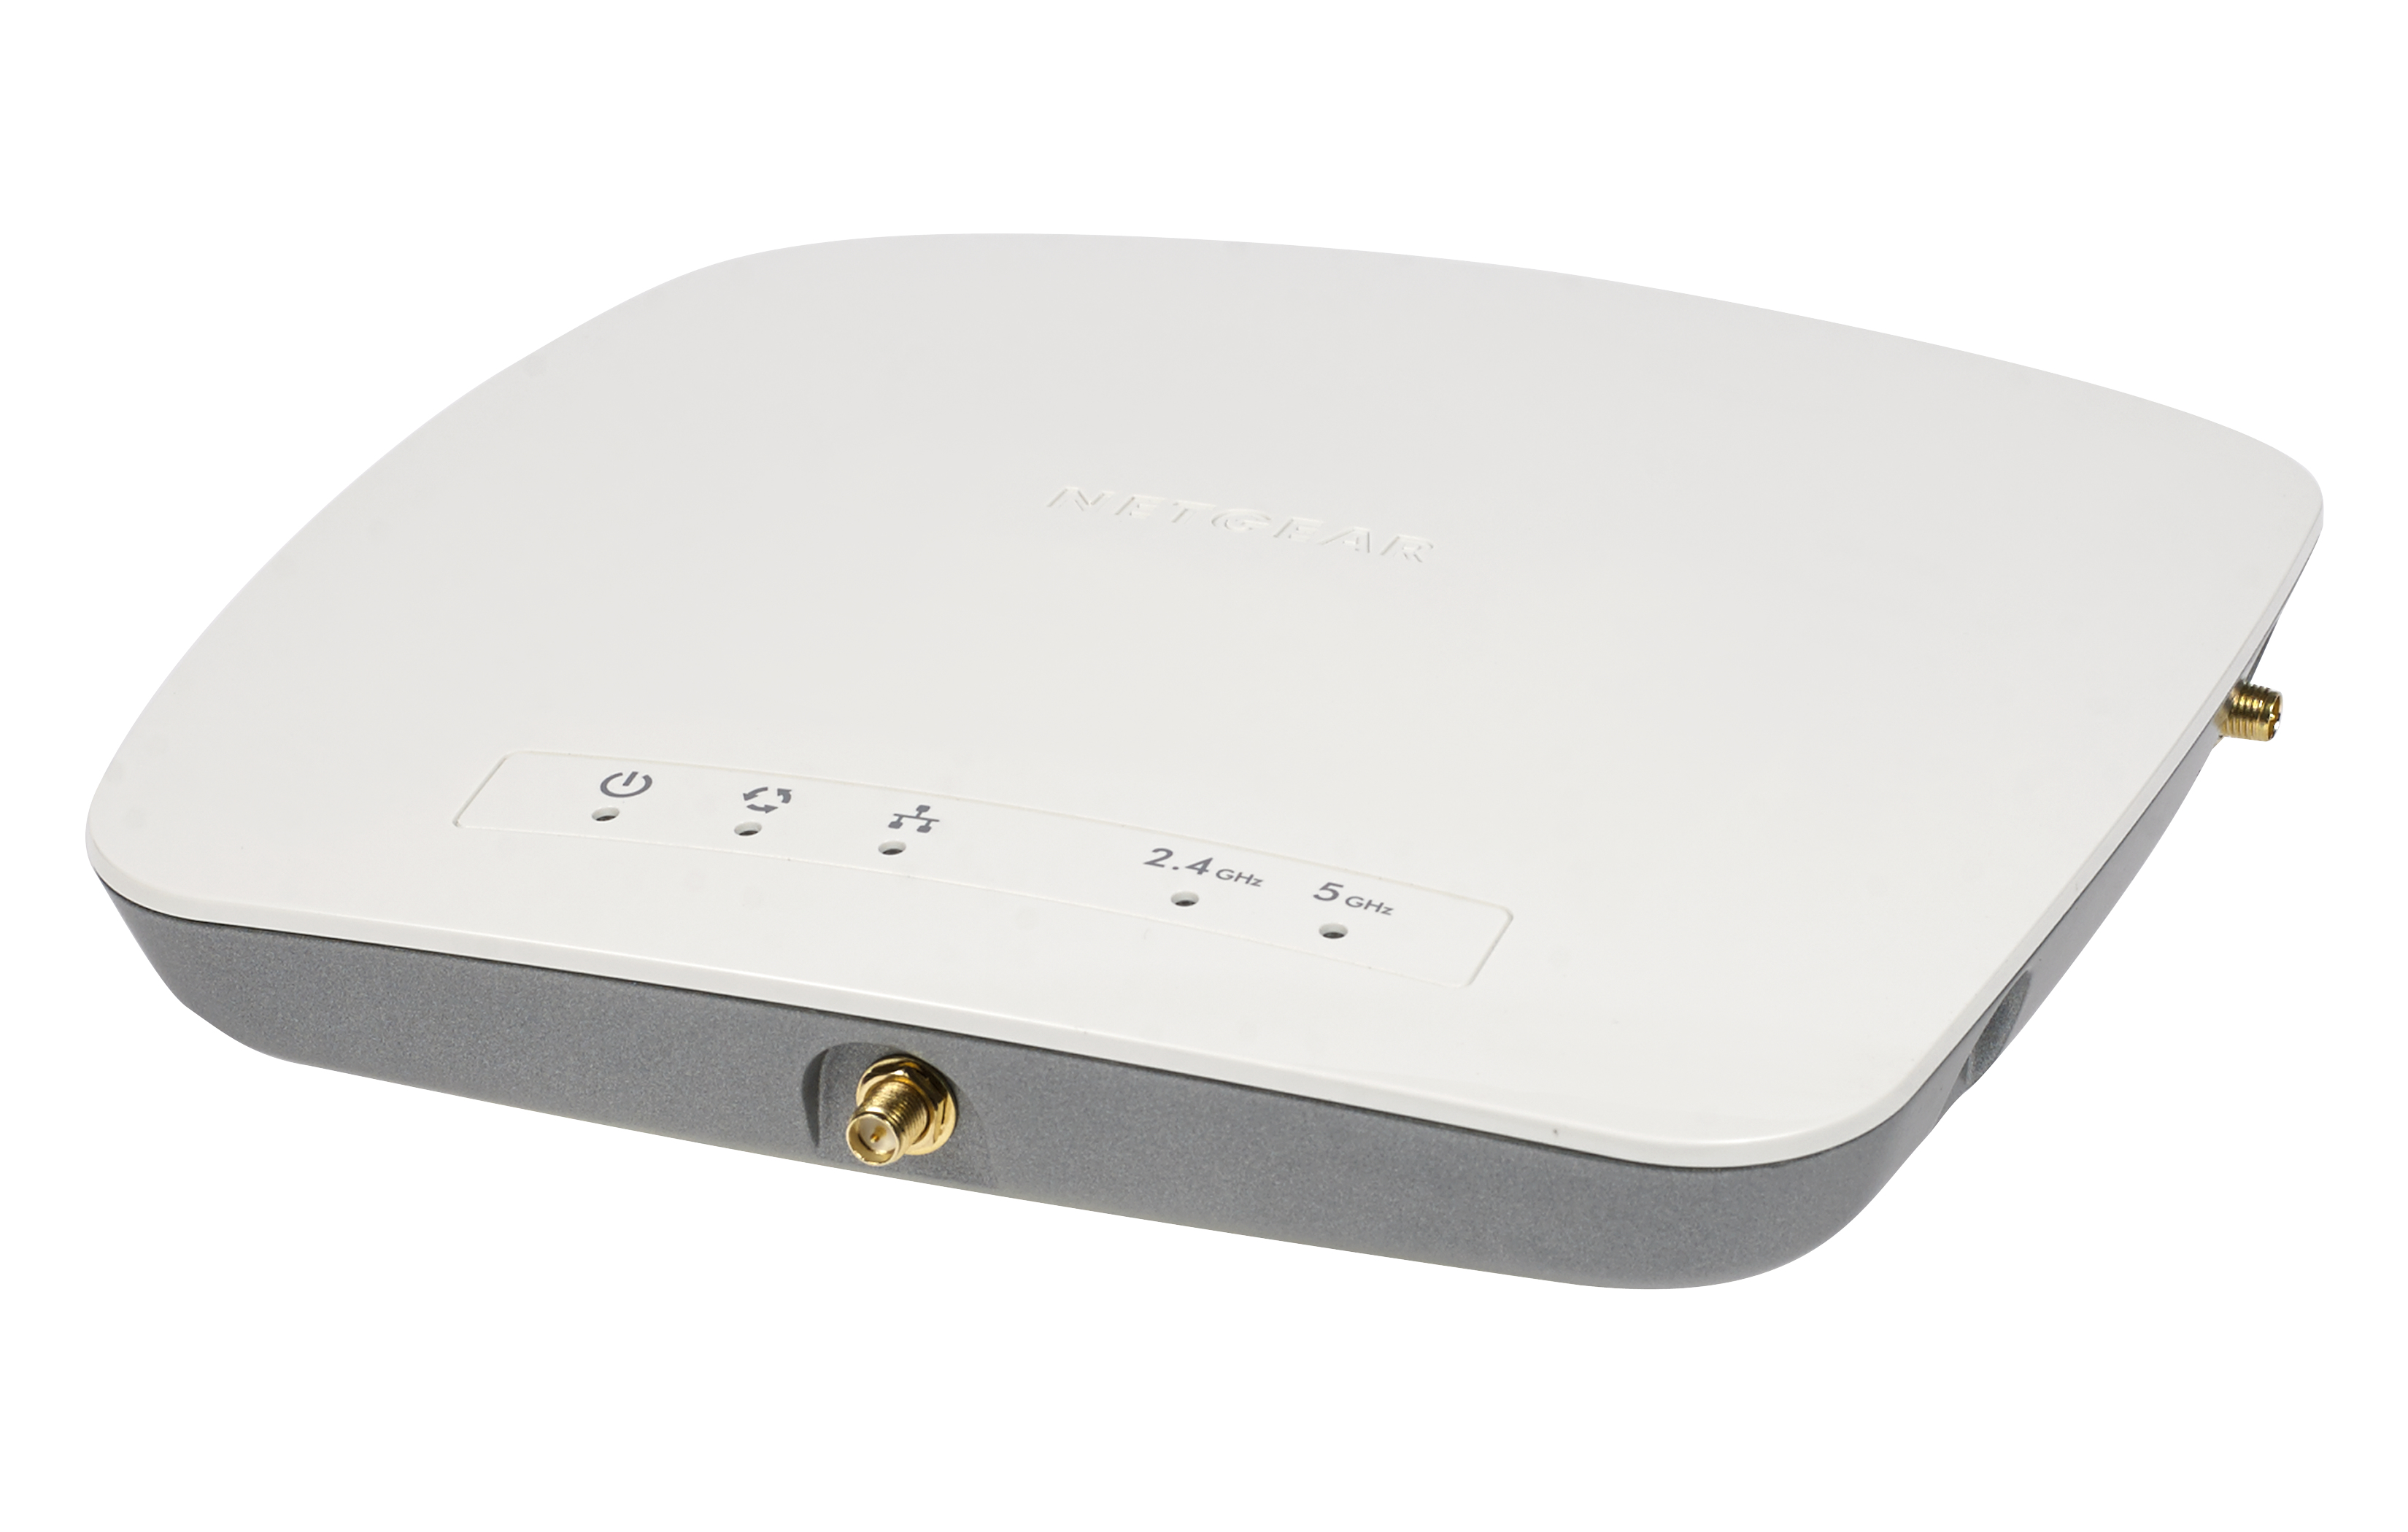 Netgear ProSafe Business 3 x 3 Dual Band Wireless-AC Access Point WAC730 - Drahtlose Basisstation - 802.11a/b/g/n/ac